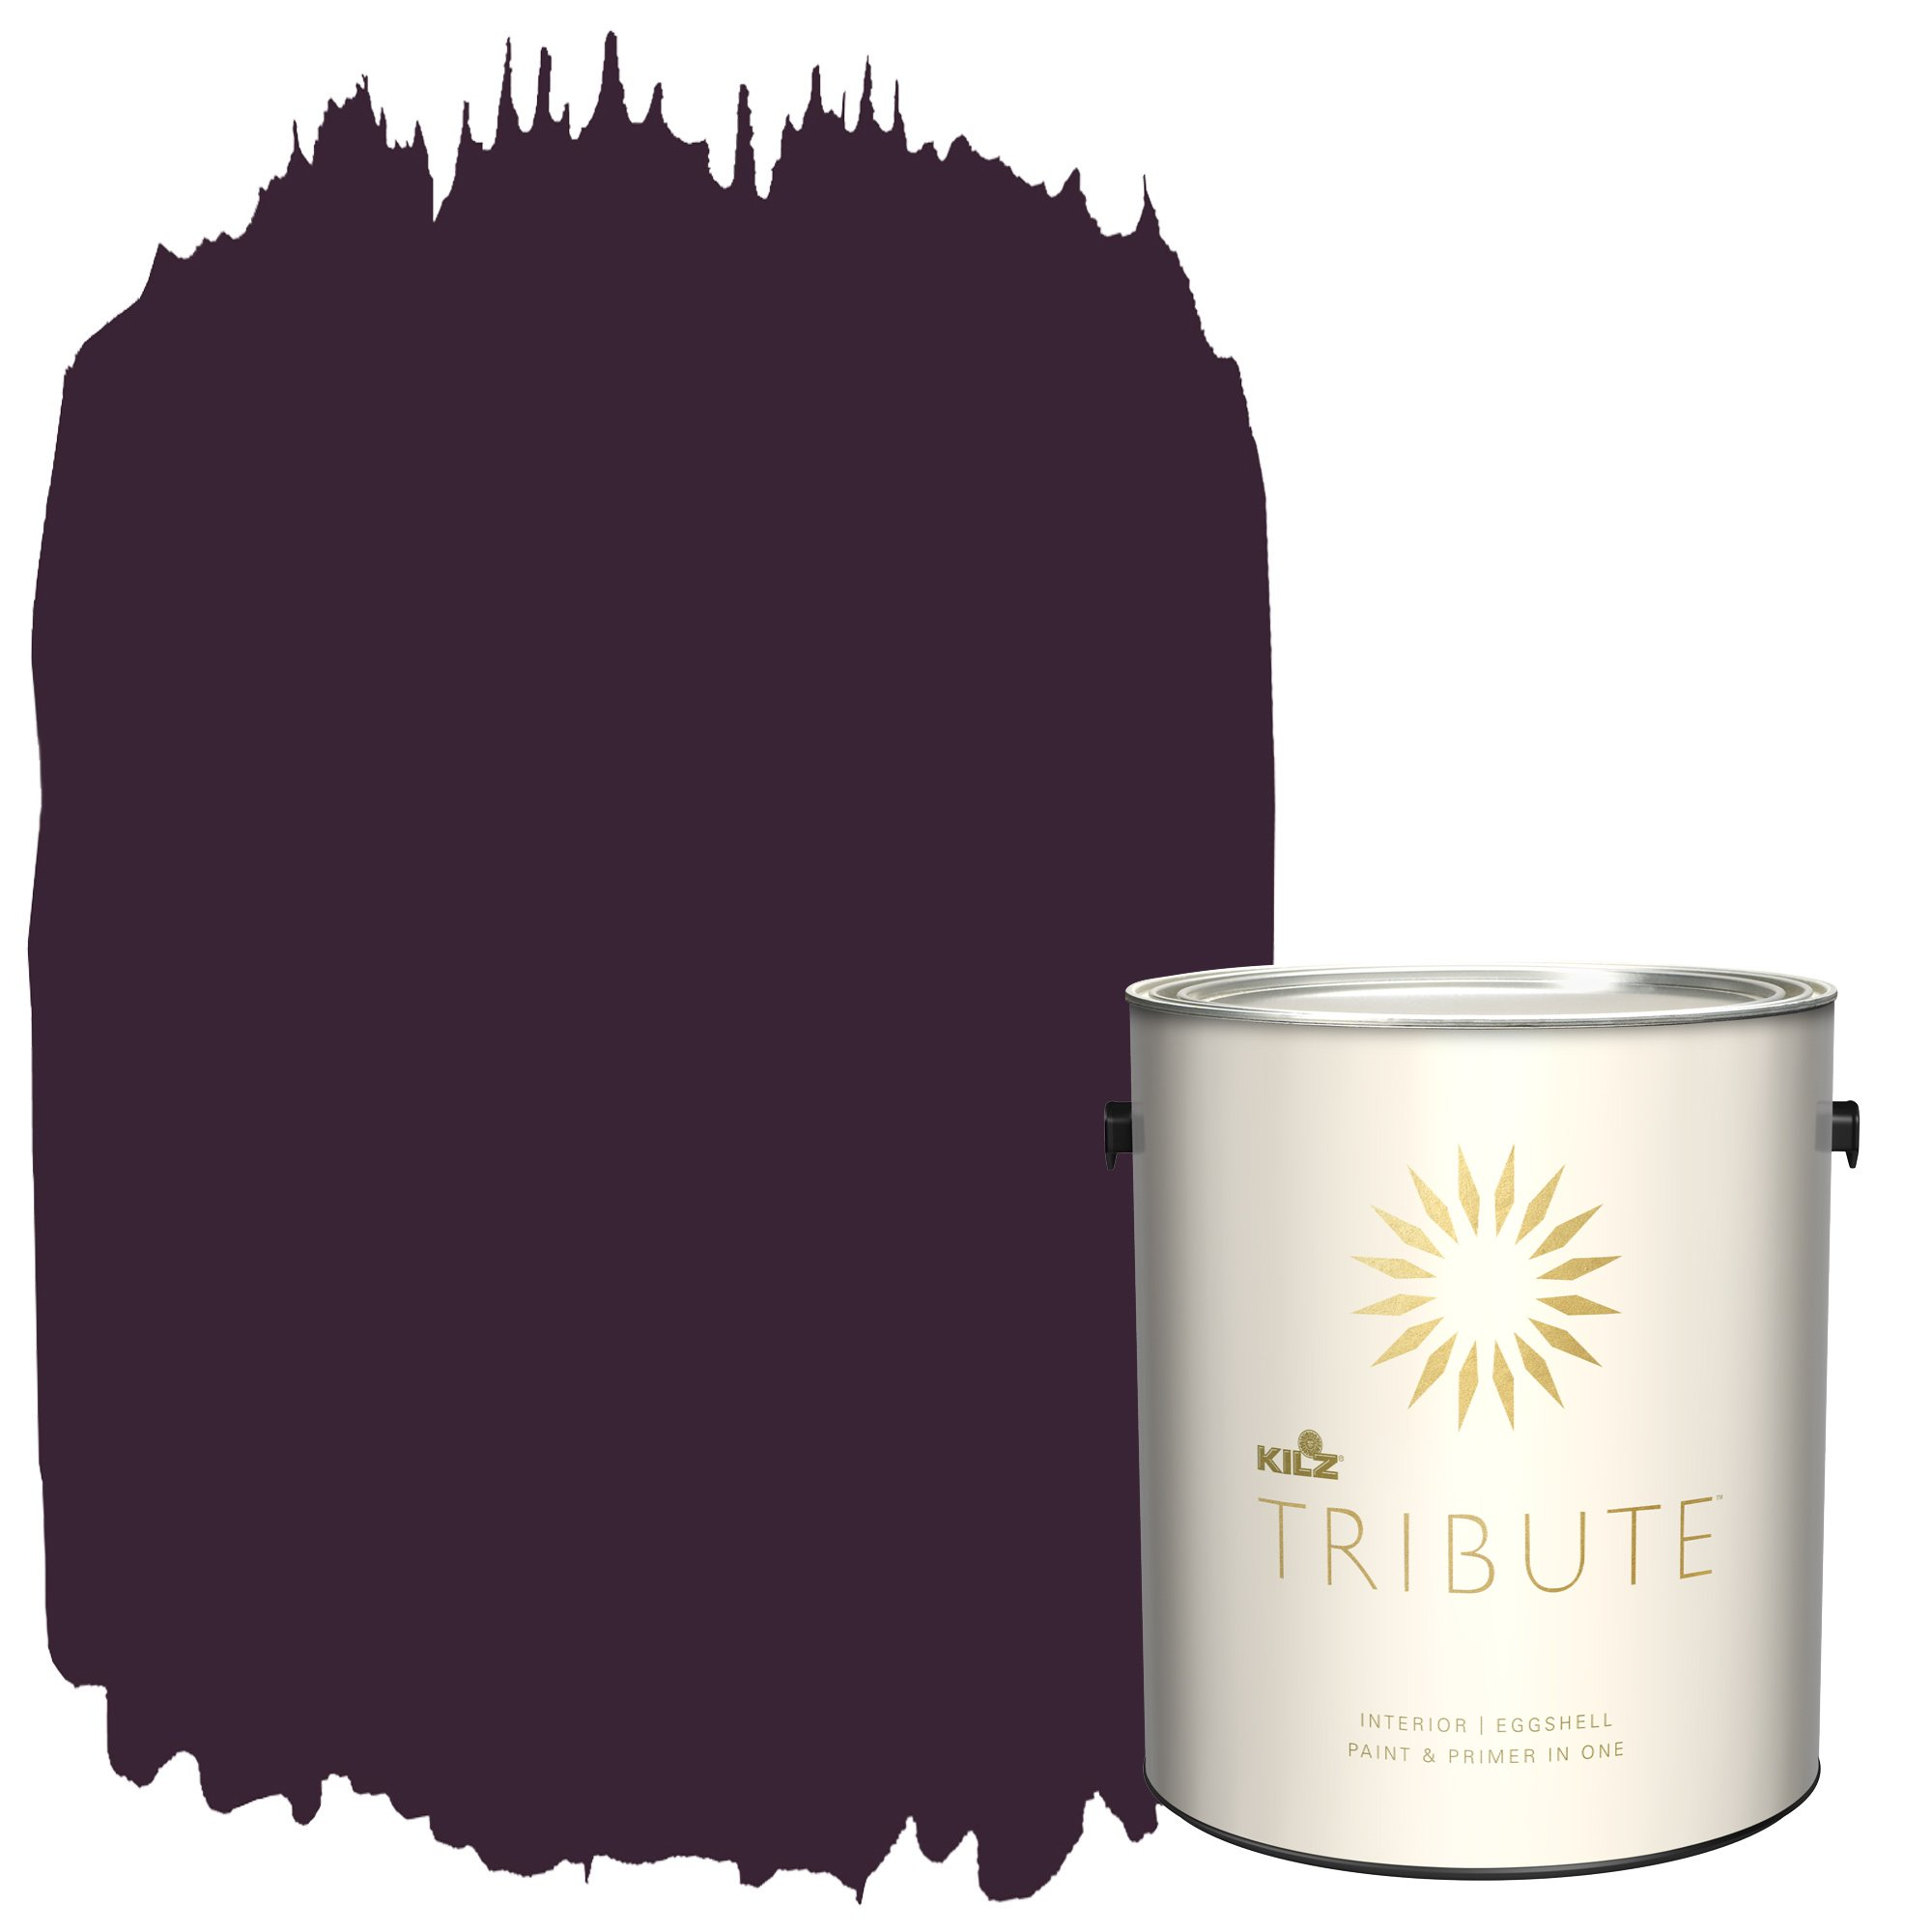 KILZ TRIBUTE Interior Eggshell Paint and Primer in One, 1 Gallon, Beetroot Purple (TB-100)